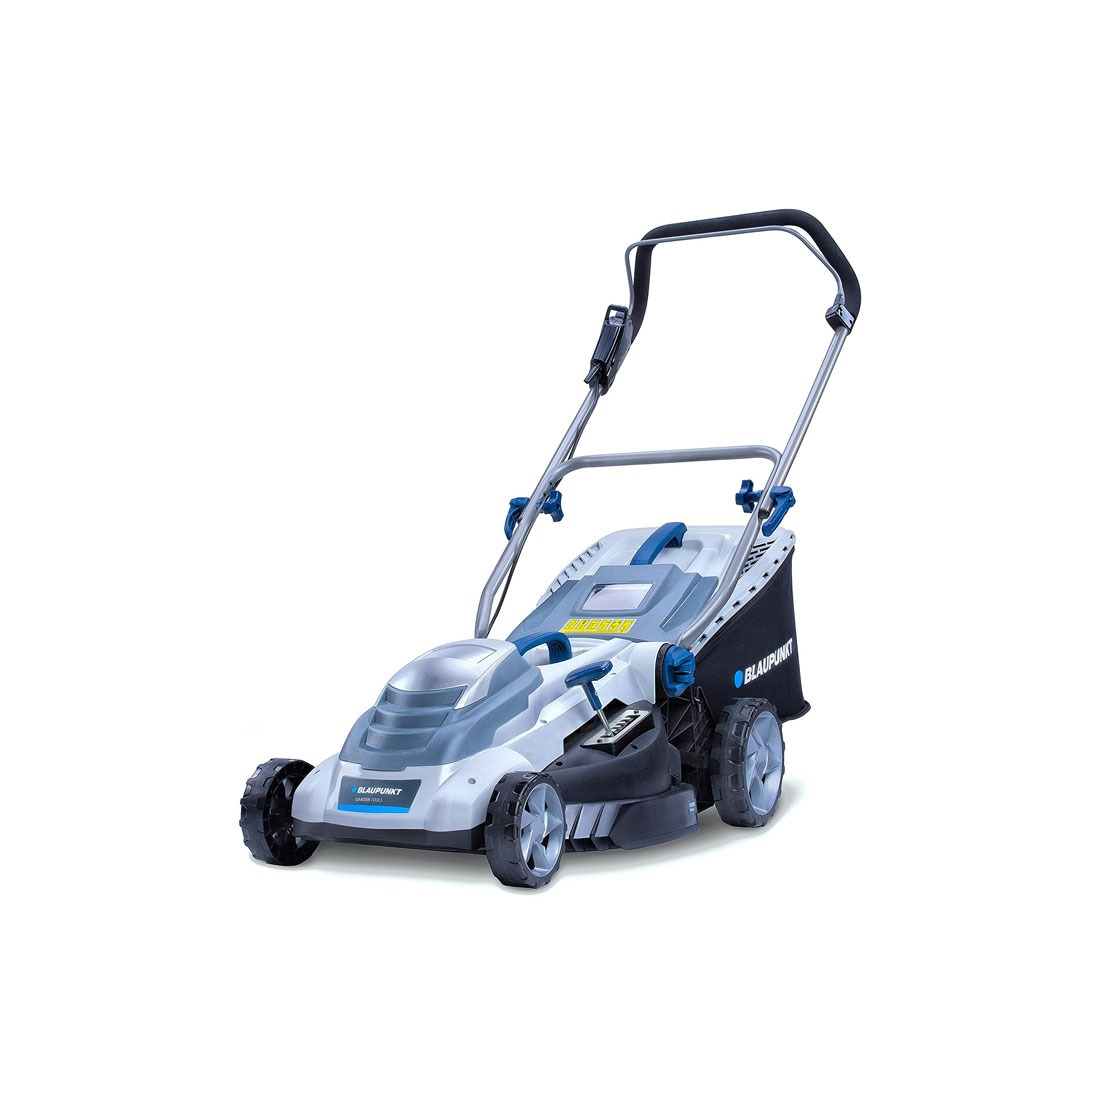 Blaupunkt GX7000 Electric Lawn Mower